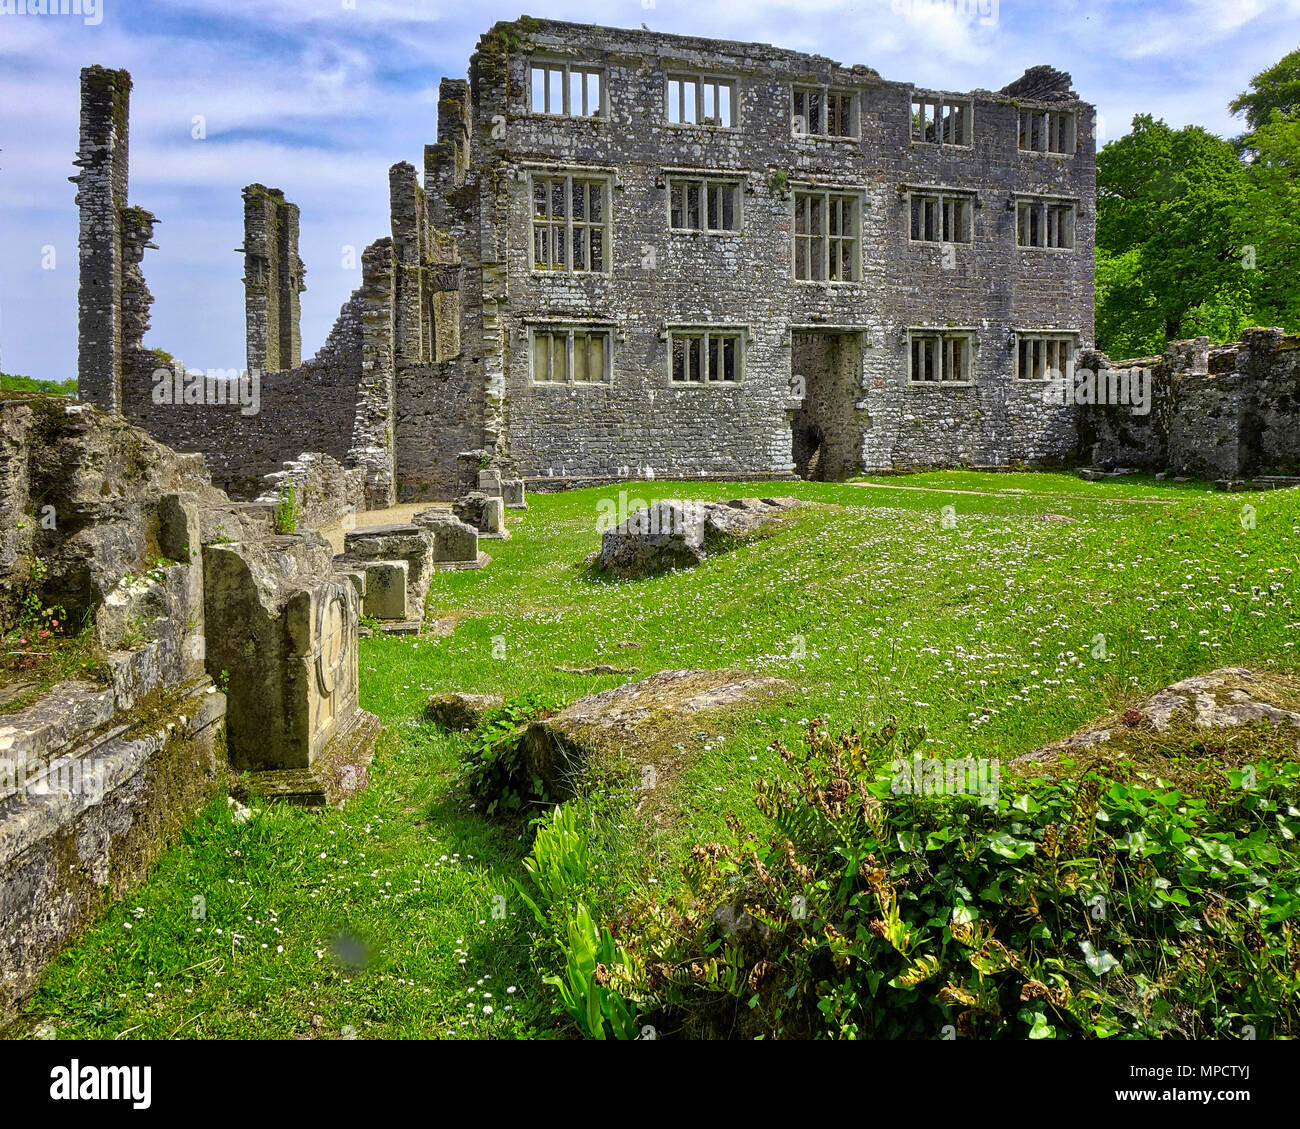 GB - DEVONSHIRE: Berry Pomeroy Castle - Lord Seymour's 16th century mansion  (HDR Image) - Stock Image